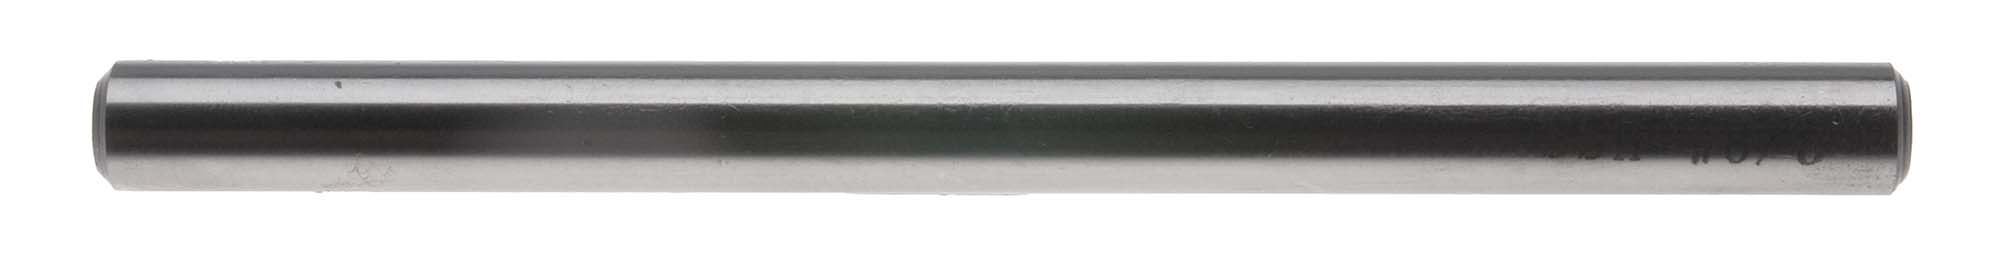 "1/2"" Jobber Length Drill Blank - High Speed Steel"